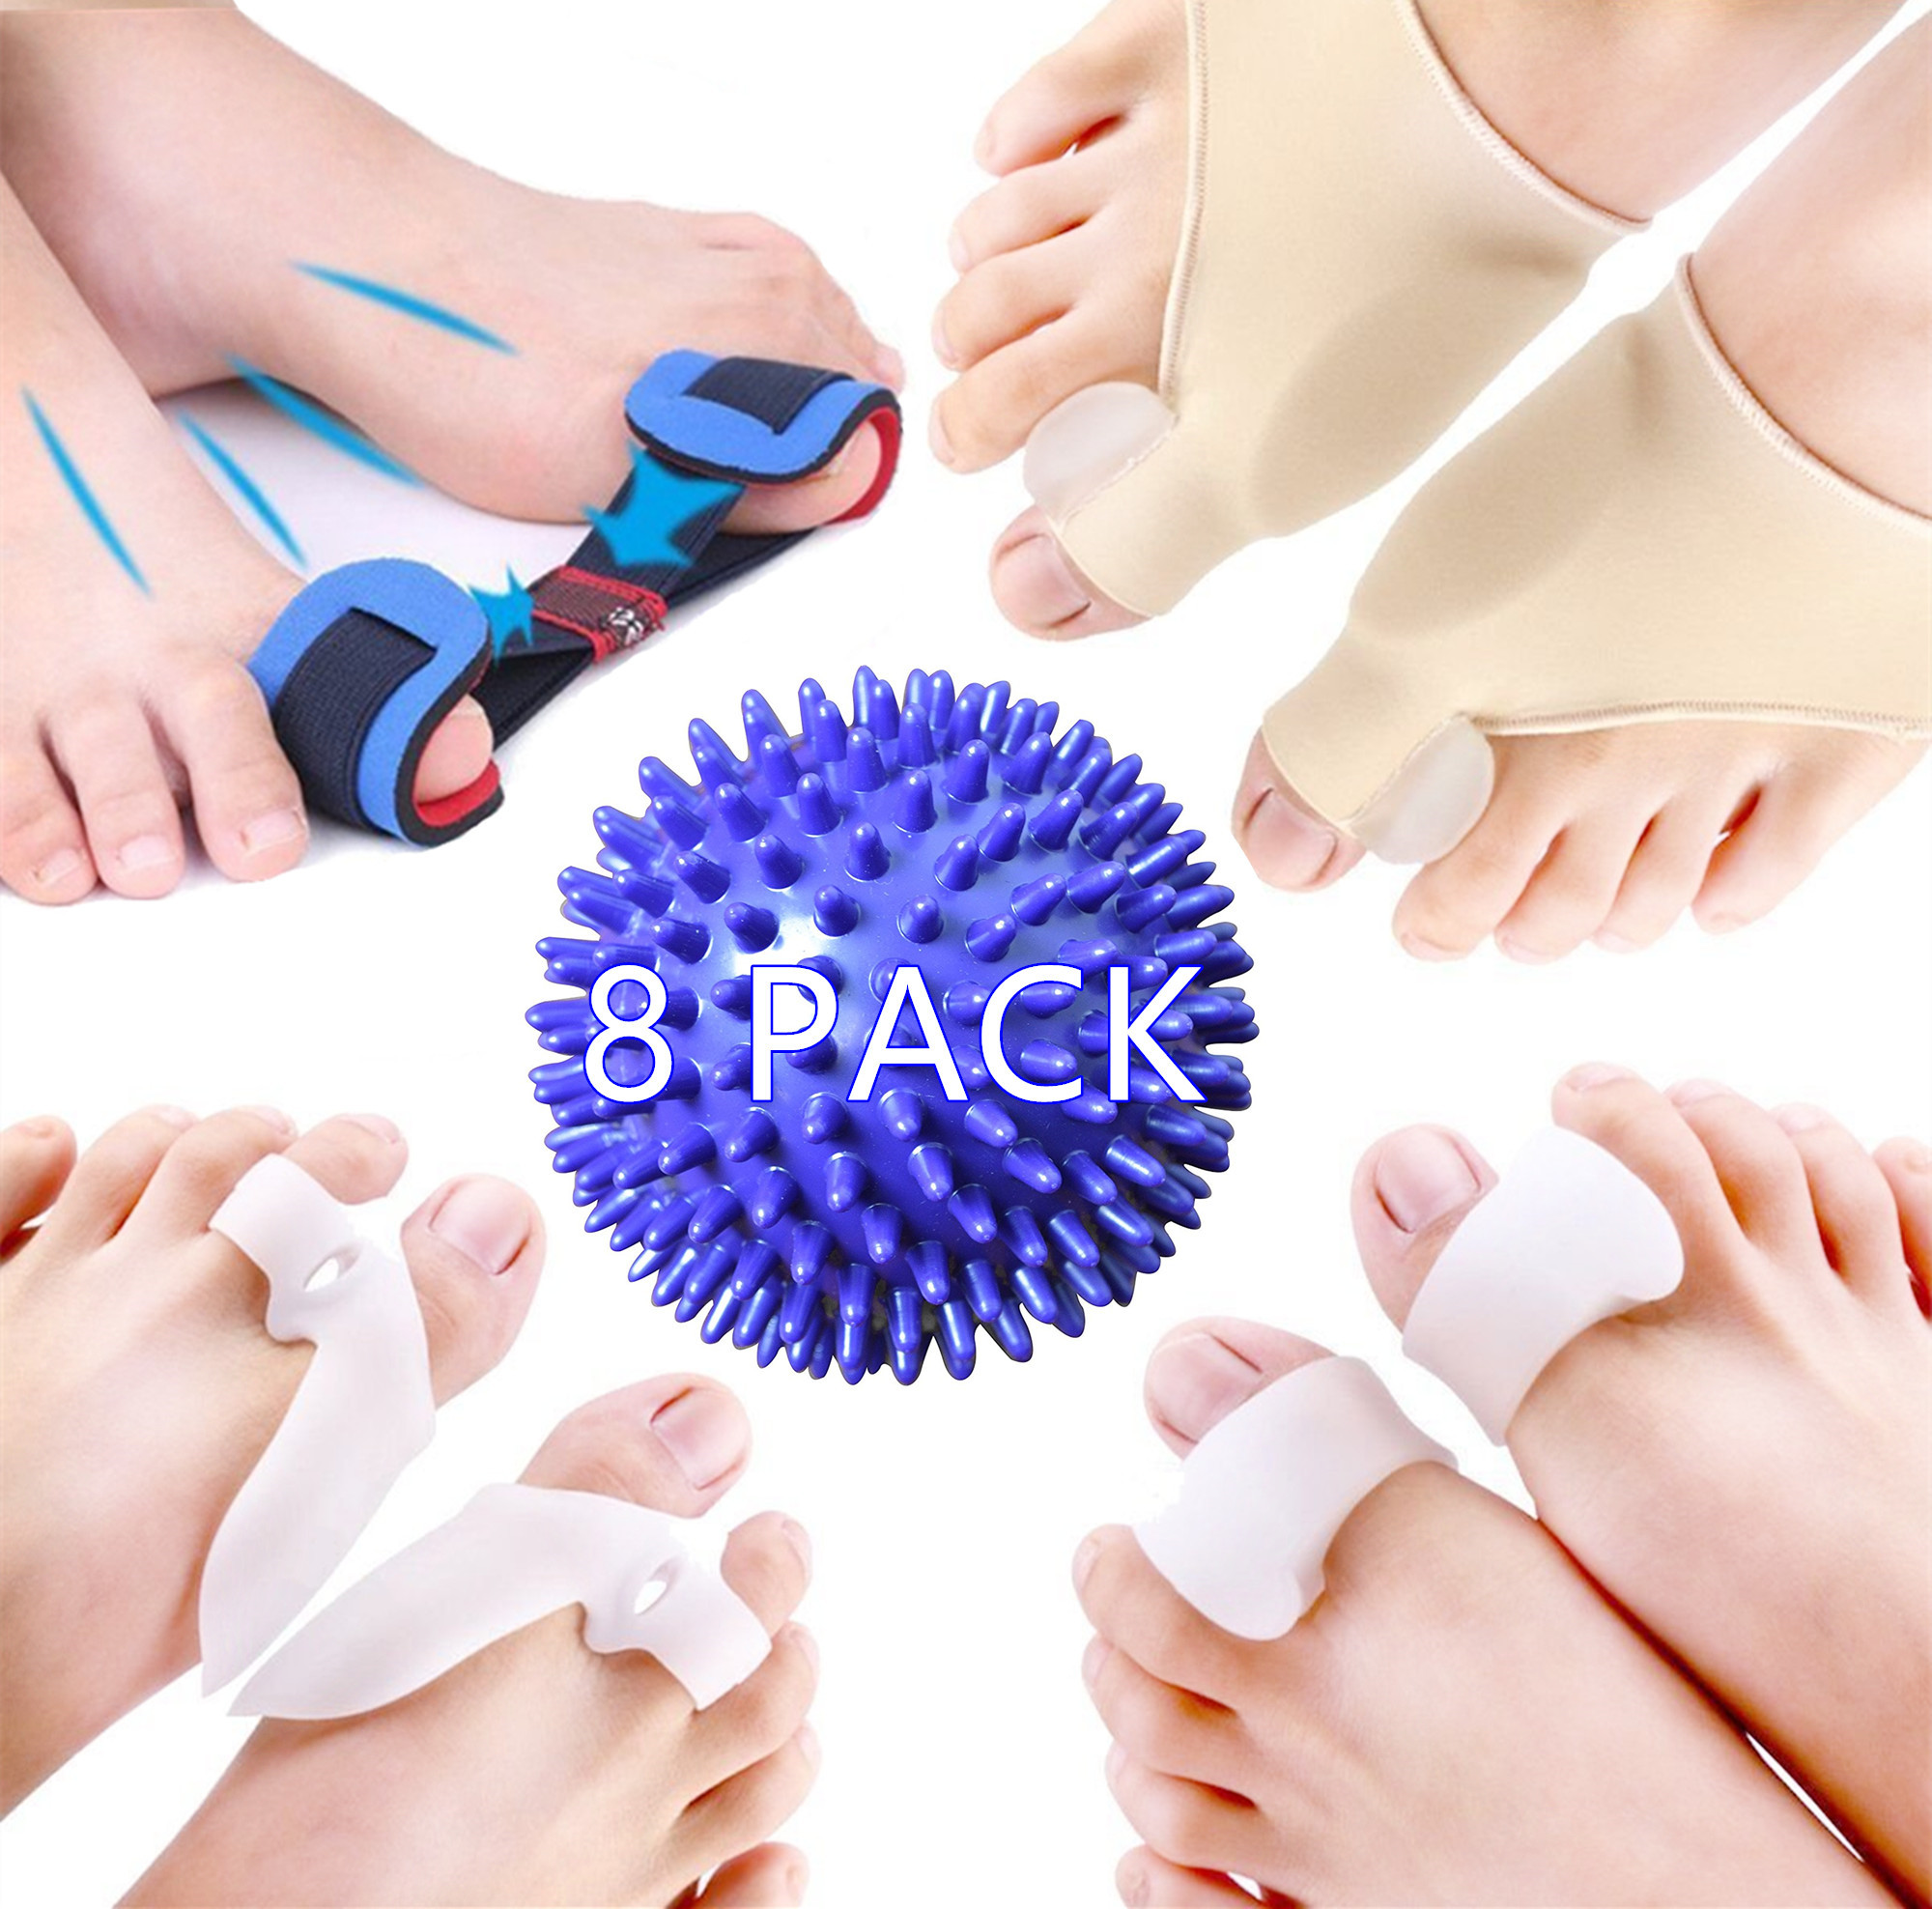 Bunion Corrector, Bunion Relief Protector Kit Spreader Bunion Relief Socks Sleeves Toe Stretcher & Separator, Foot Massage Ball for Tailors Bunion, Hallux Valgus, Overlapping Toes, Big Toe Joint